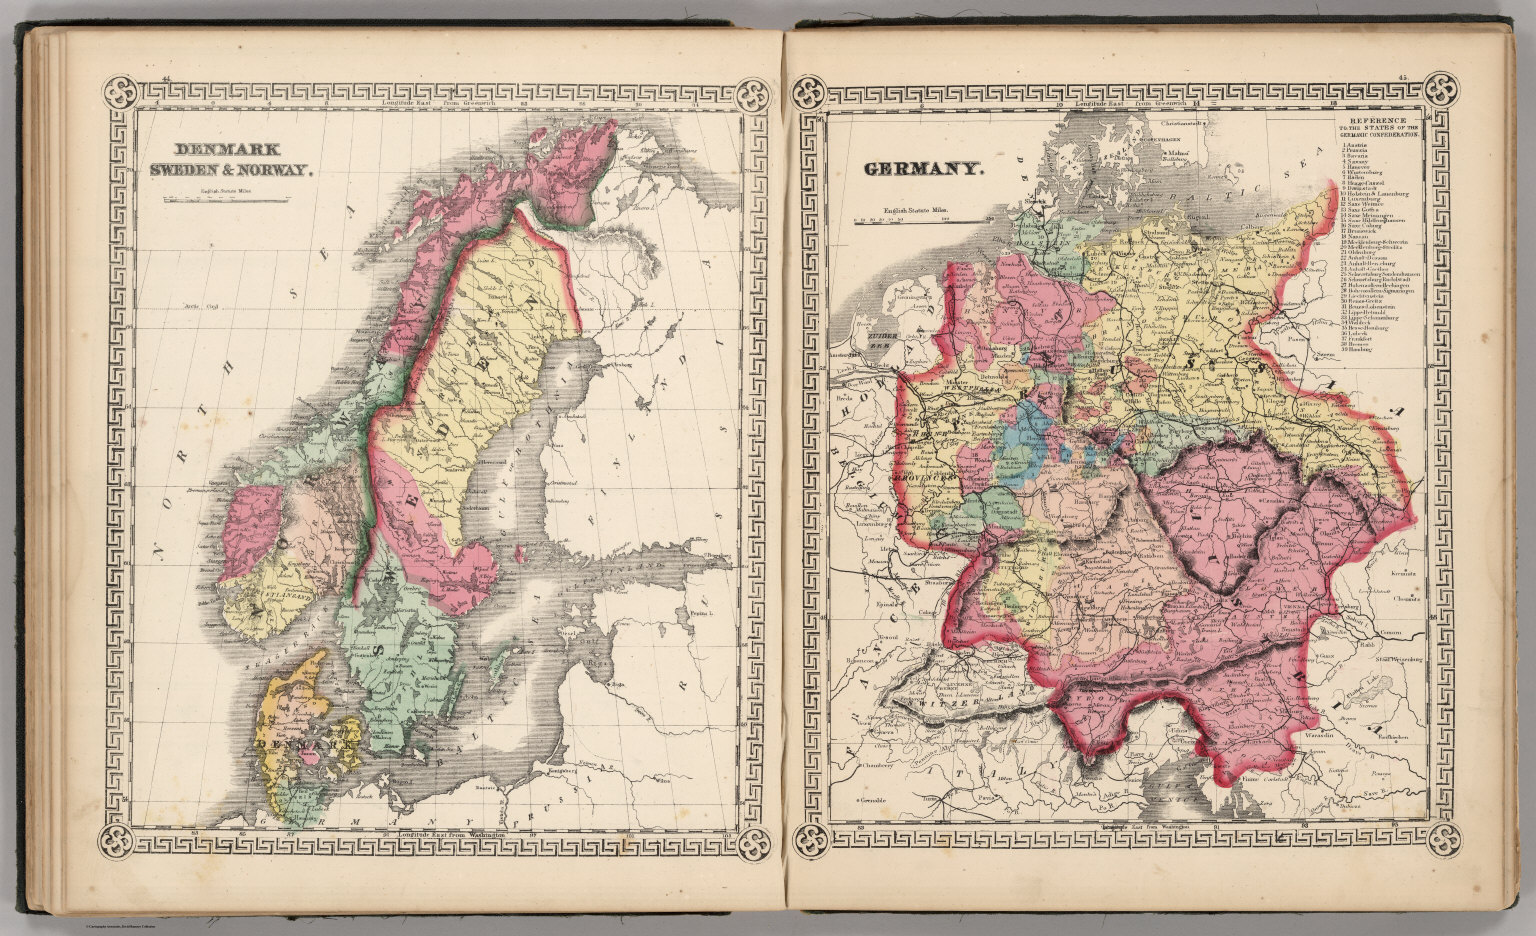 Denmark sweden and norway germany david rumsey historical map denmark sweden and norway germany gumiabroncs Gallery